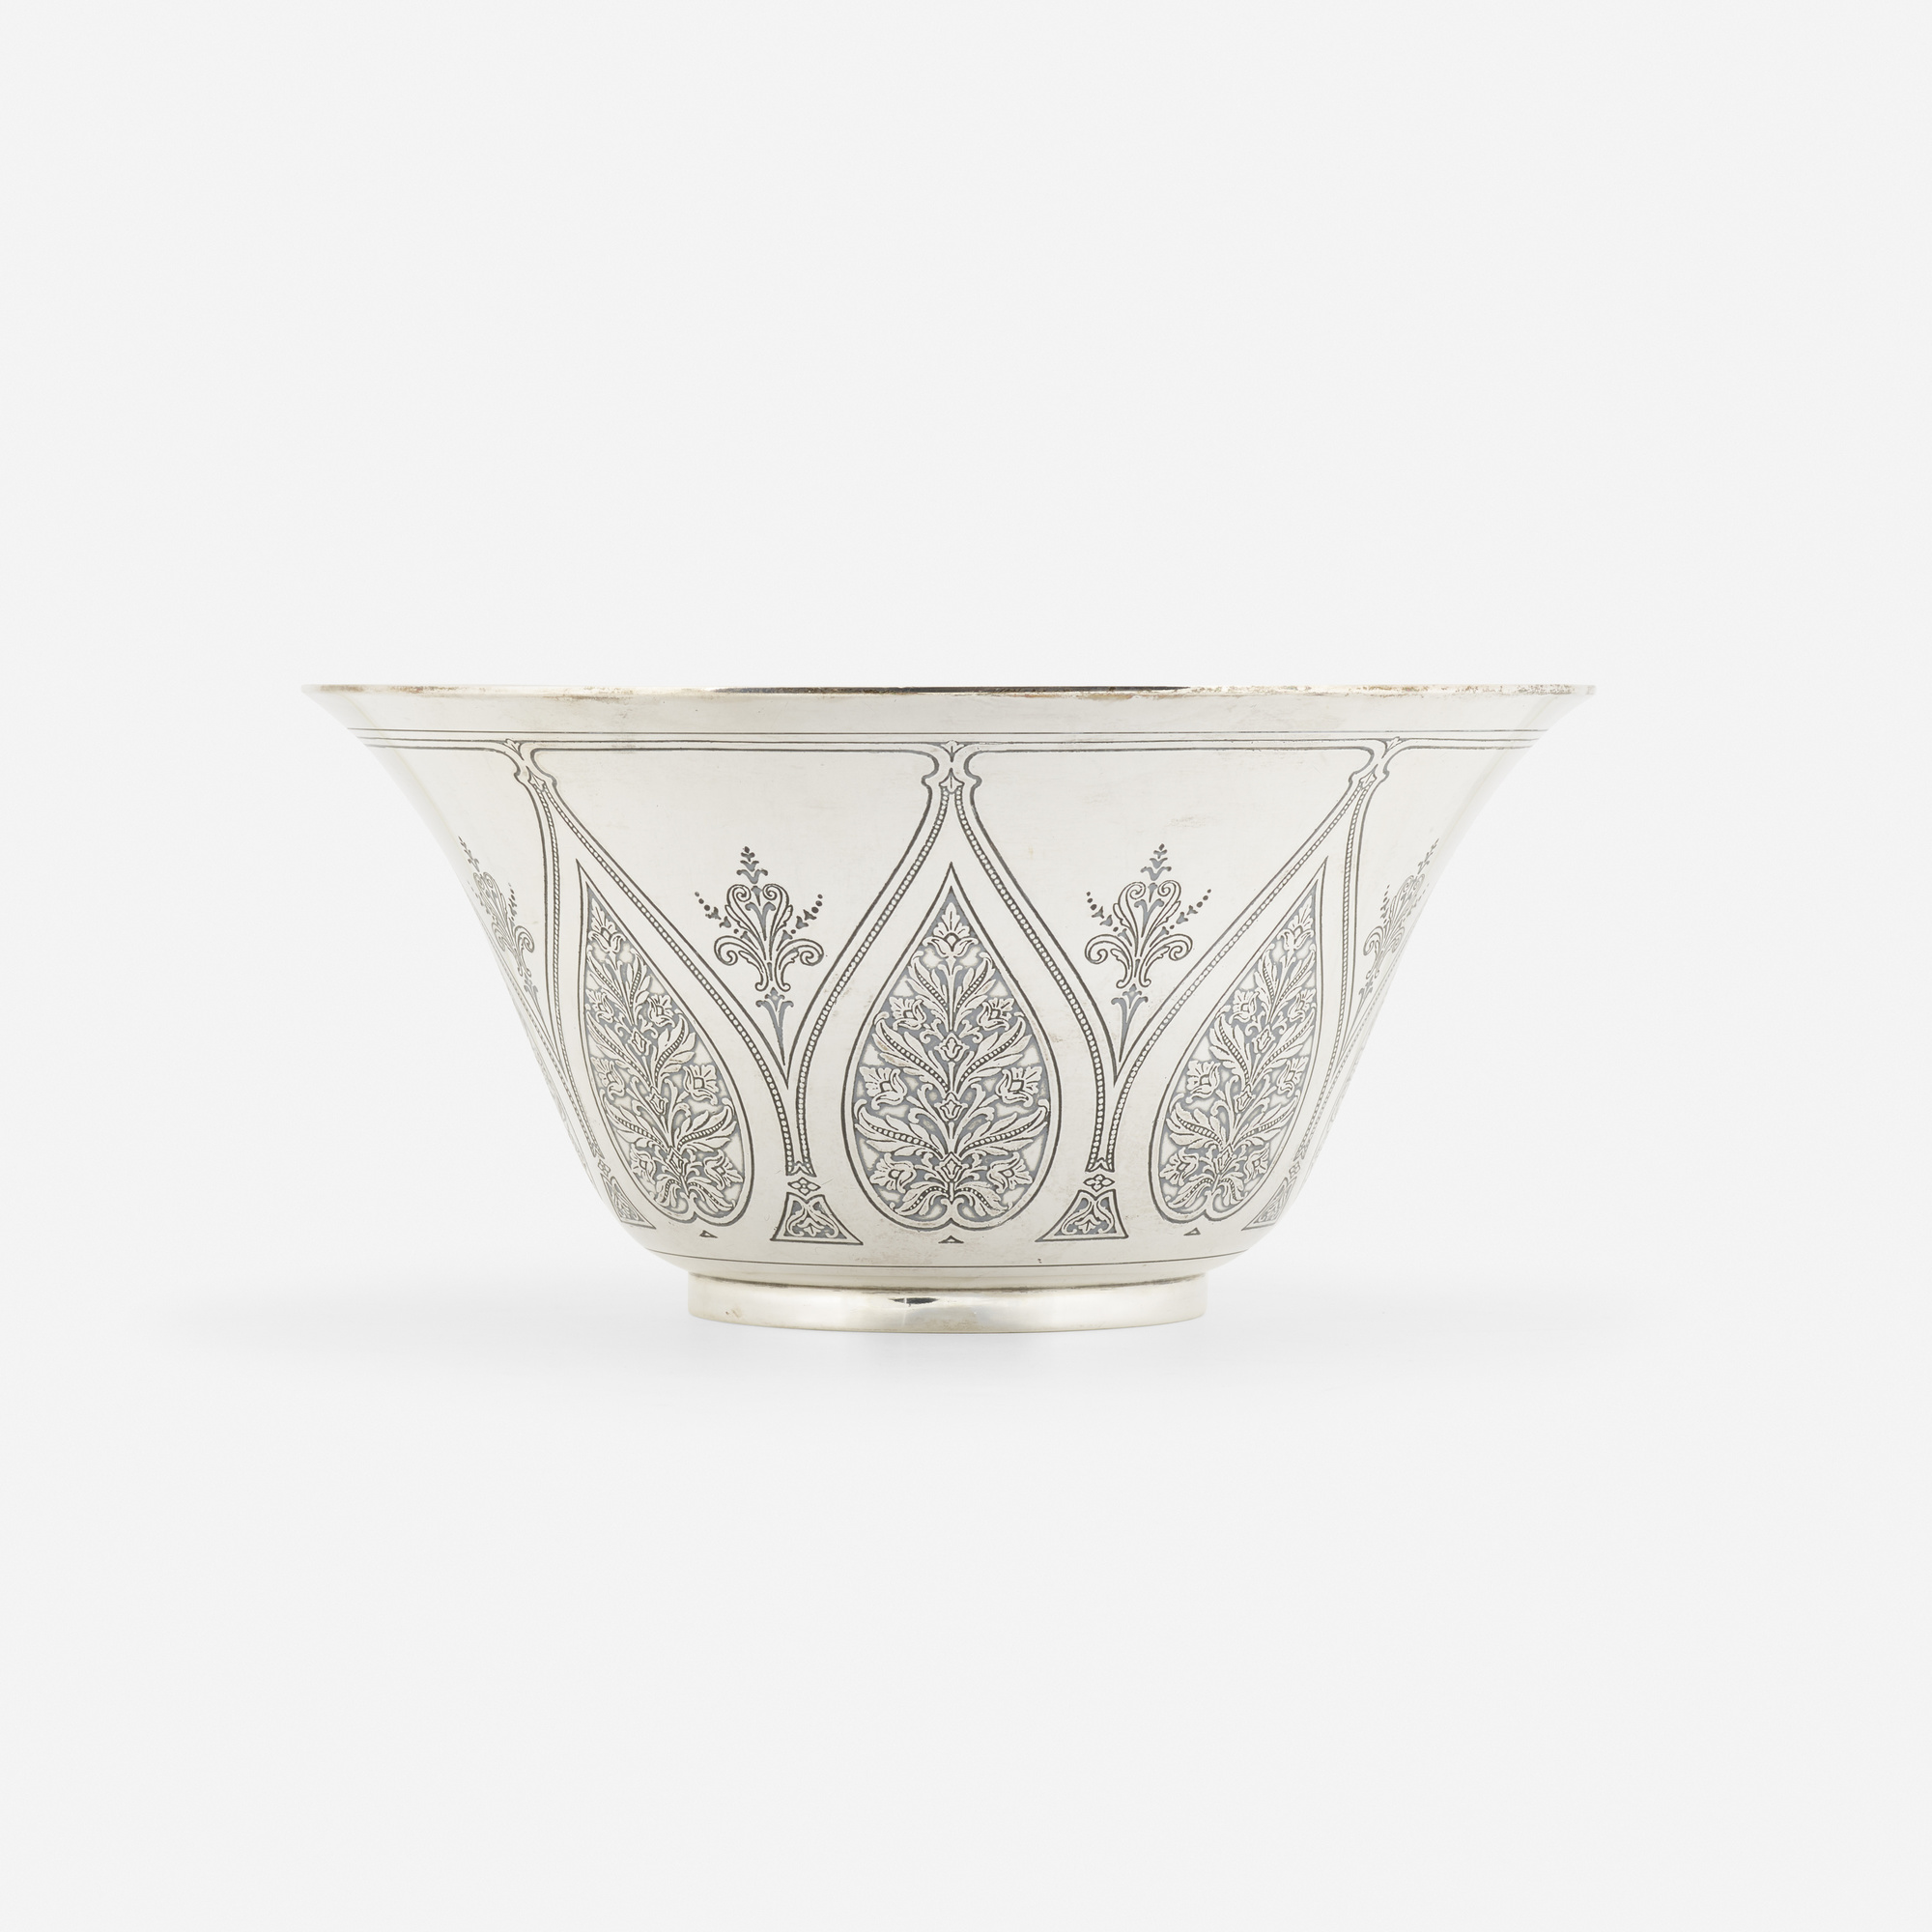 166 Tiffany Co Flared Bowl With Floral Design Object Home Day 2 30 April 2020 Auctions Rago Auctions